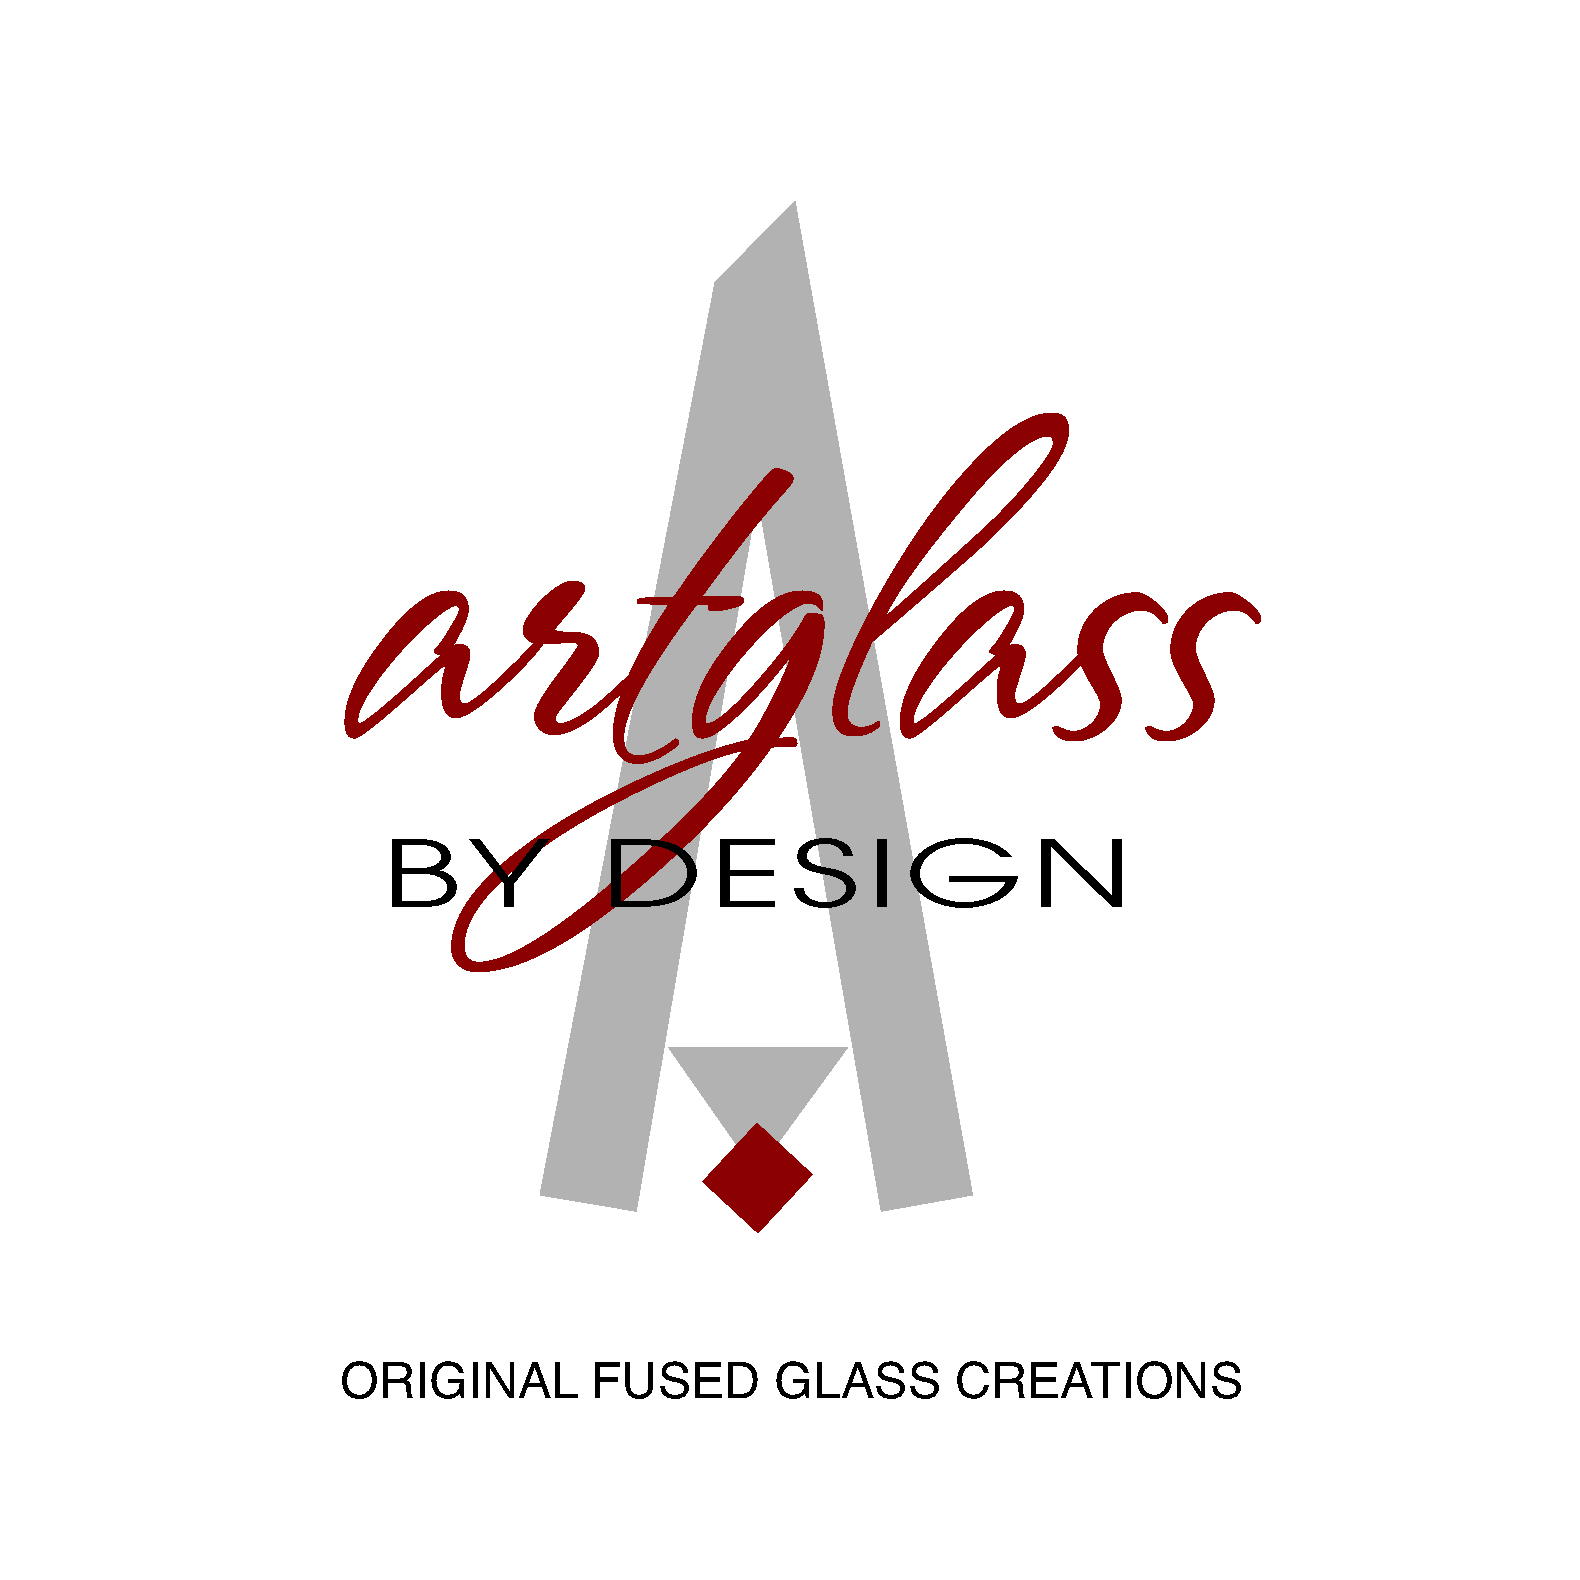 artglass by design